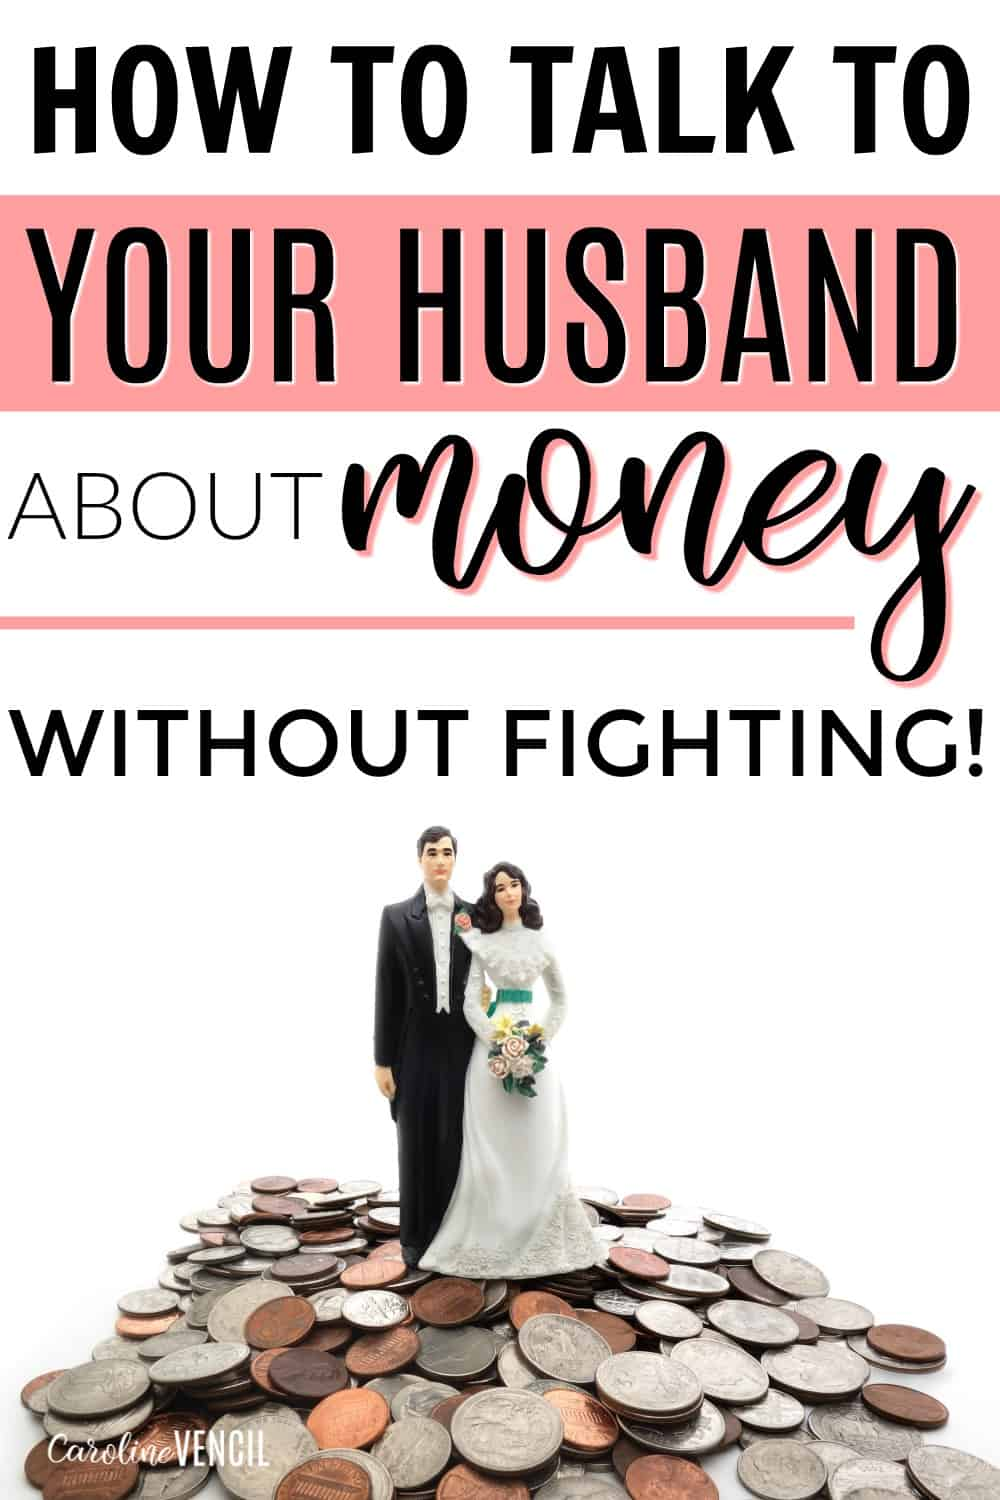 How to talk to your husband without fighting